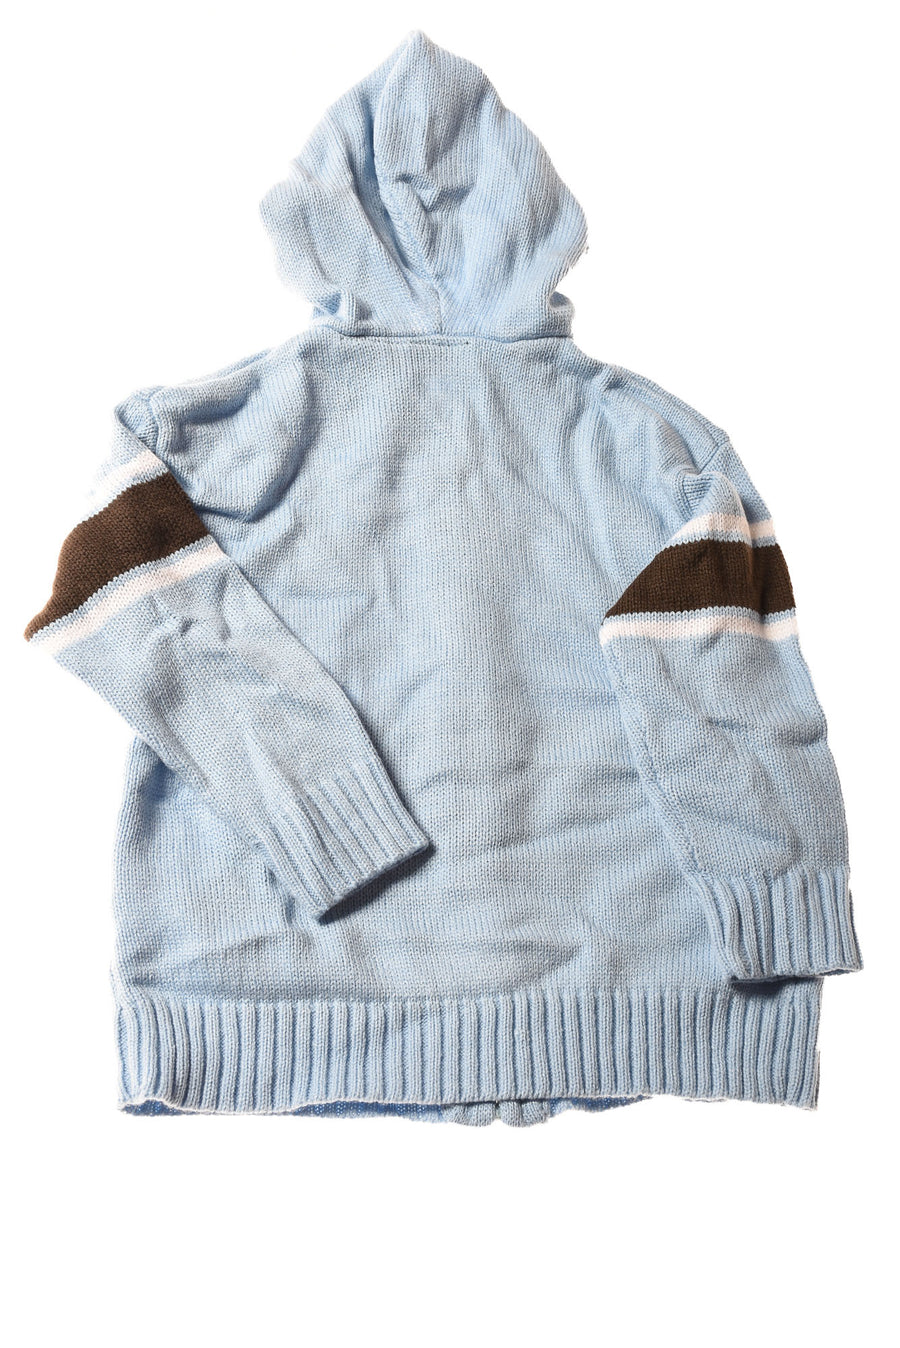 NEW U.S. Polo Assn. Toddler Boy's Sweater 3T Blue